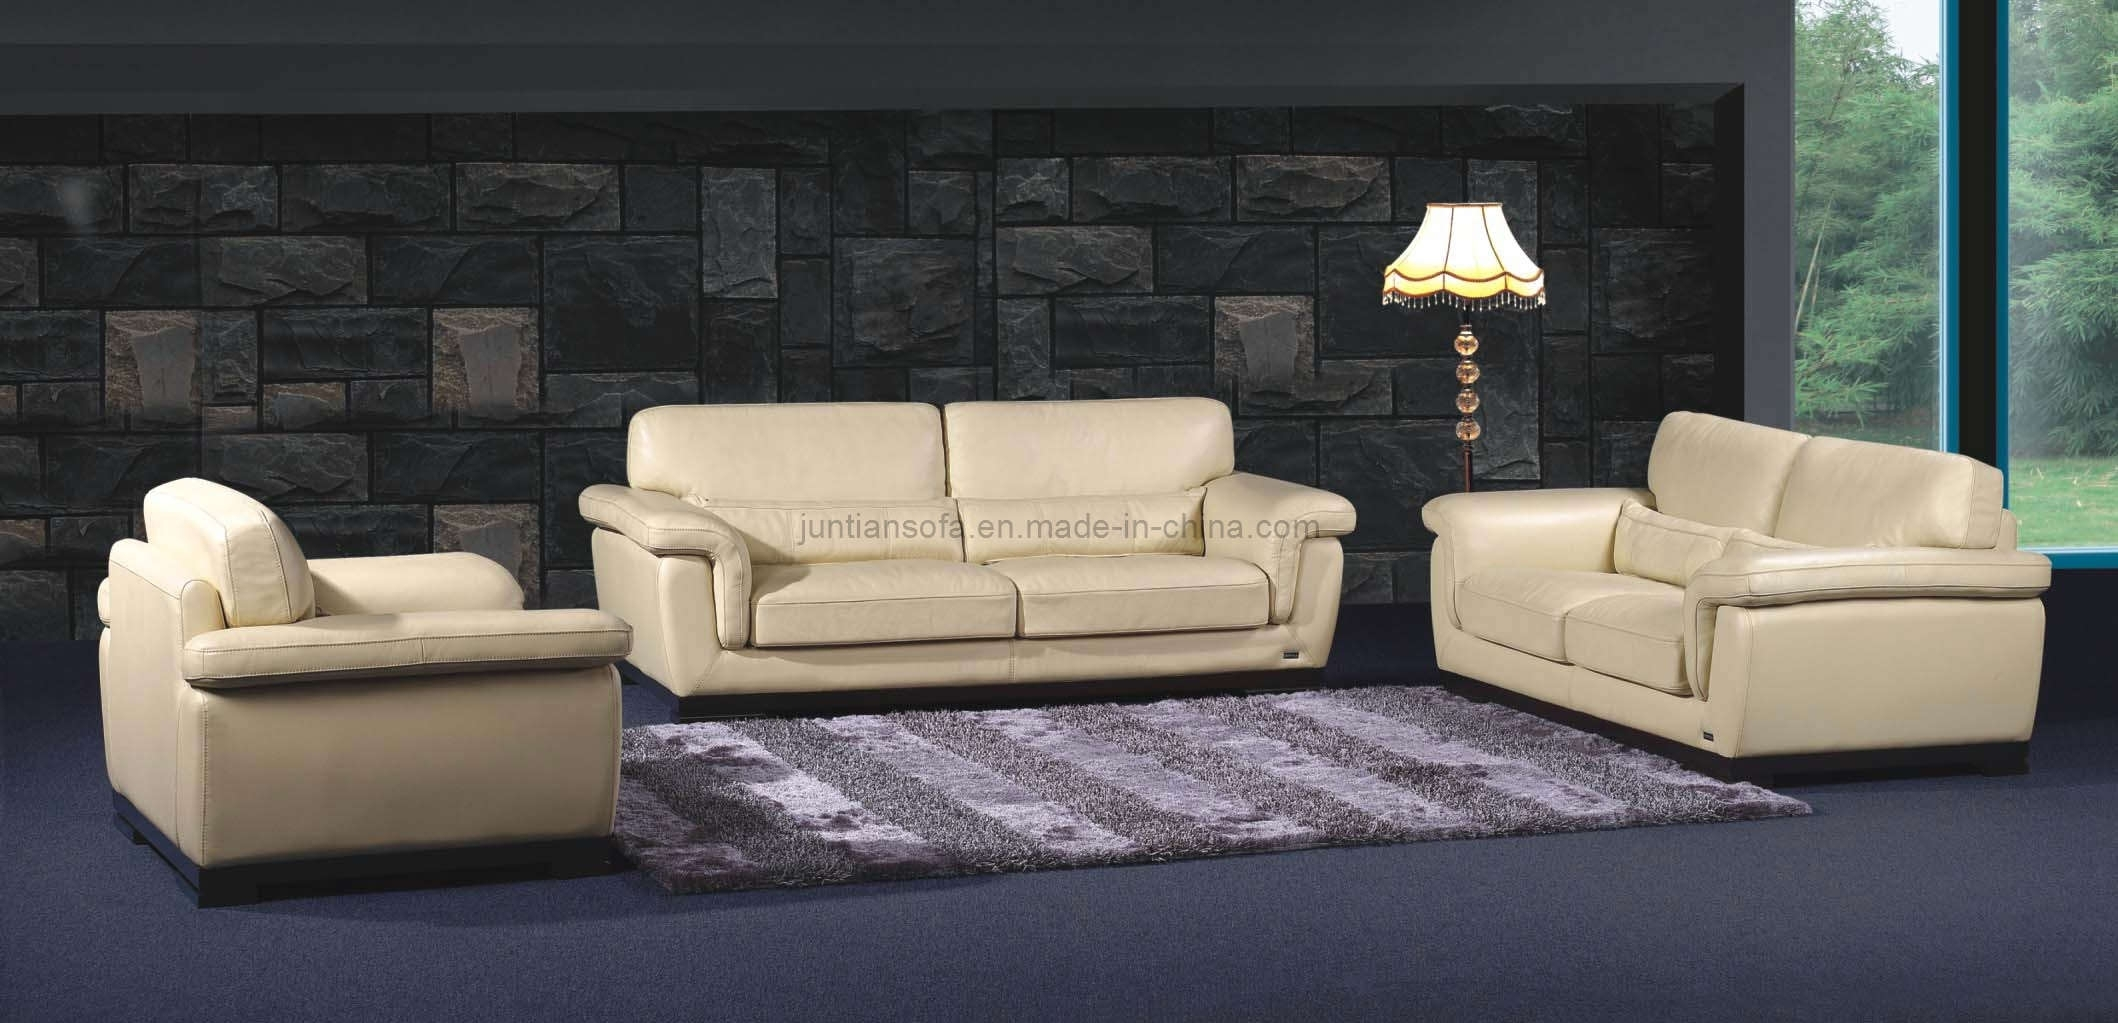 good quality sectional sofas karlstad sofa leather 10 inspirations ideas